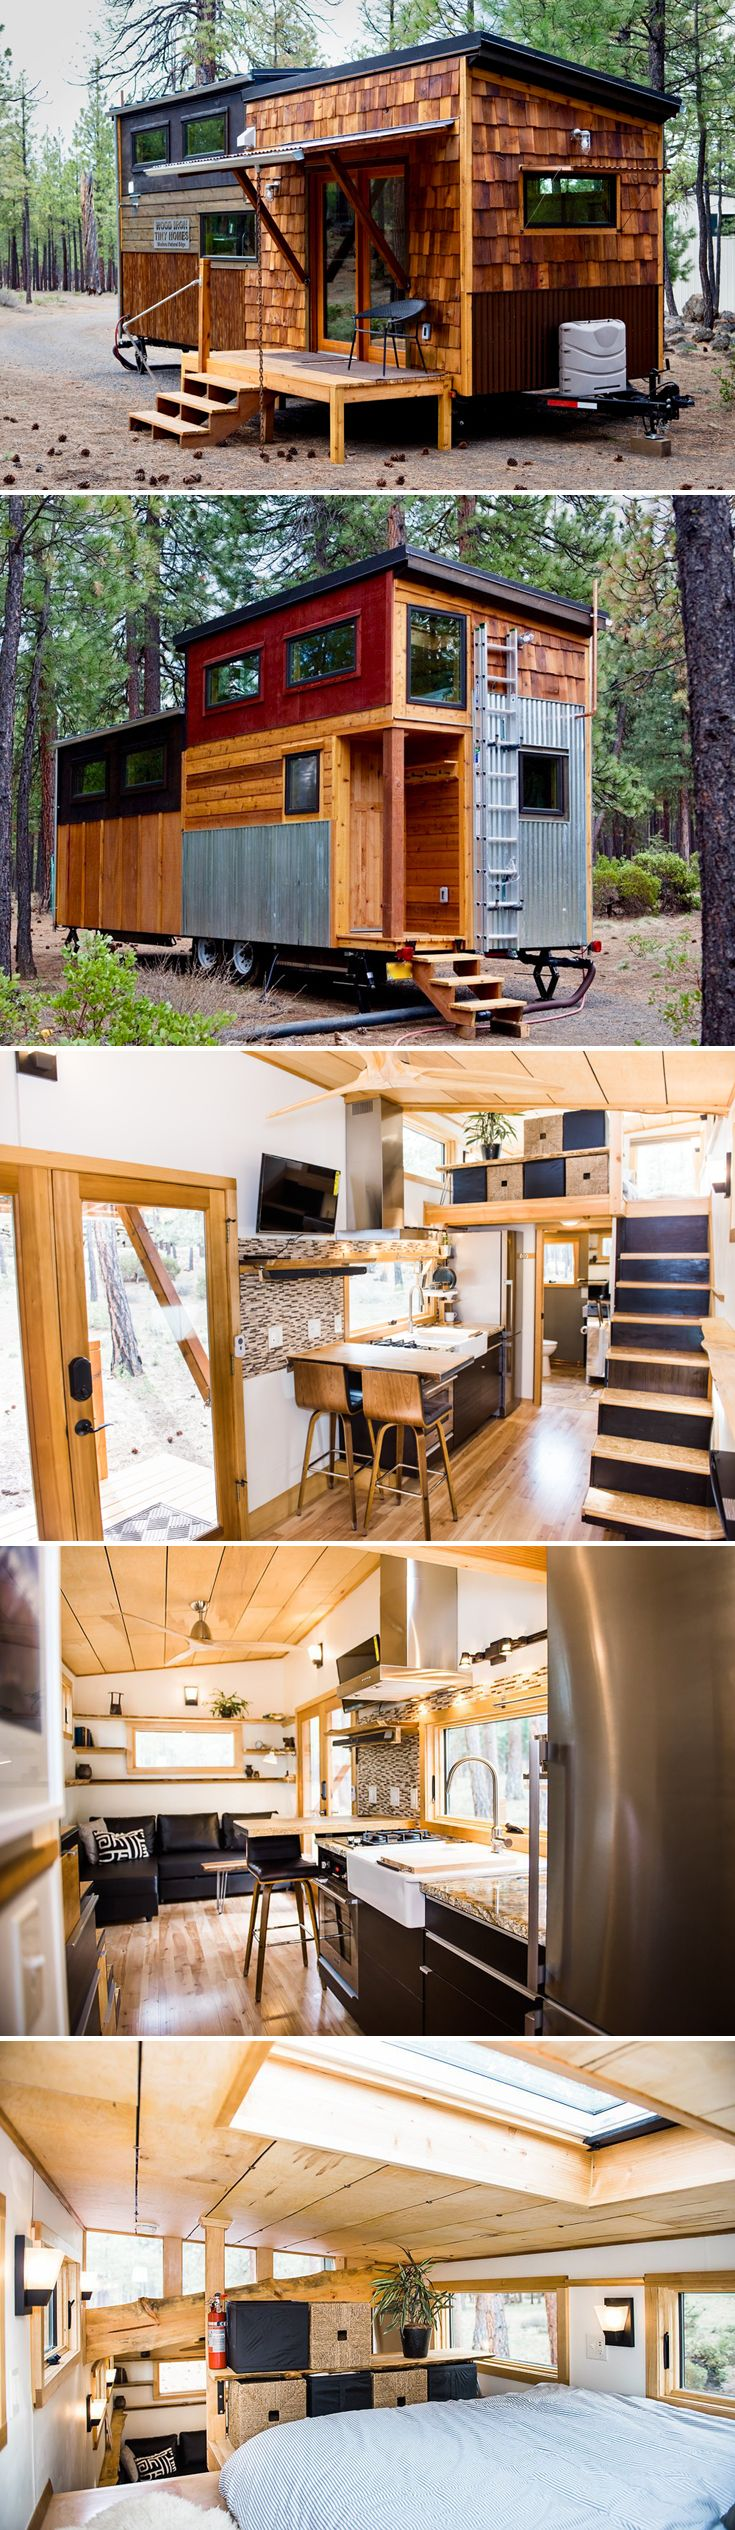 North Sister is the debut tiny house from family owned and operated Wood Iron Tiny Homes, based in Sisters, Oregon.  The tiny house does a wonderful job showcasing the family's superb craftsmanship and three decades of construction experience.